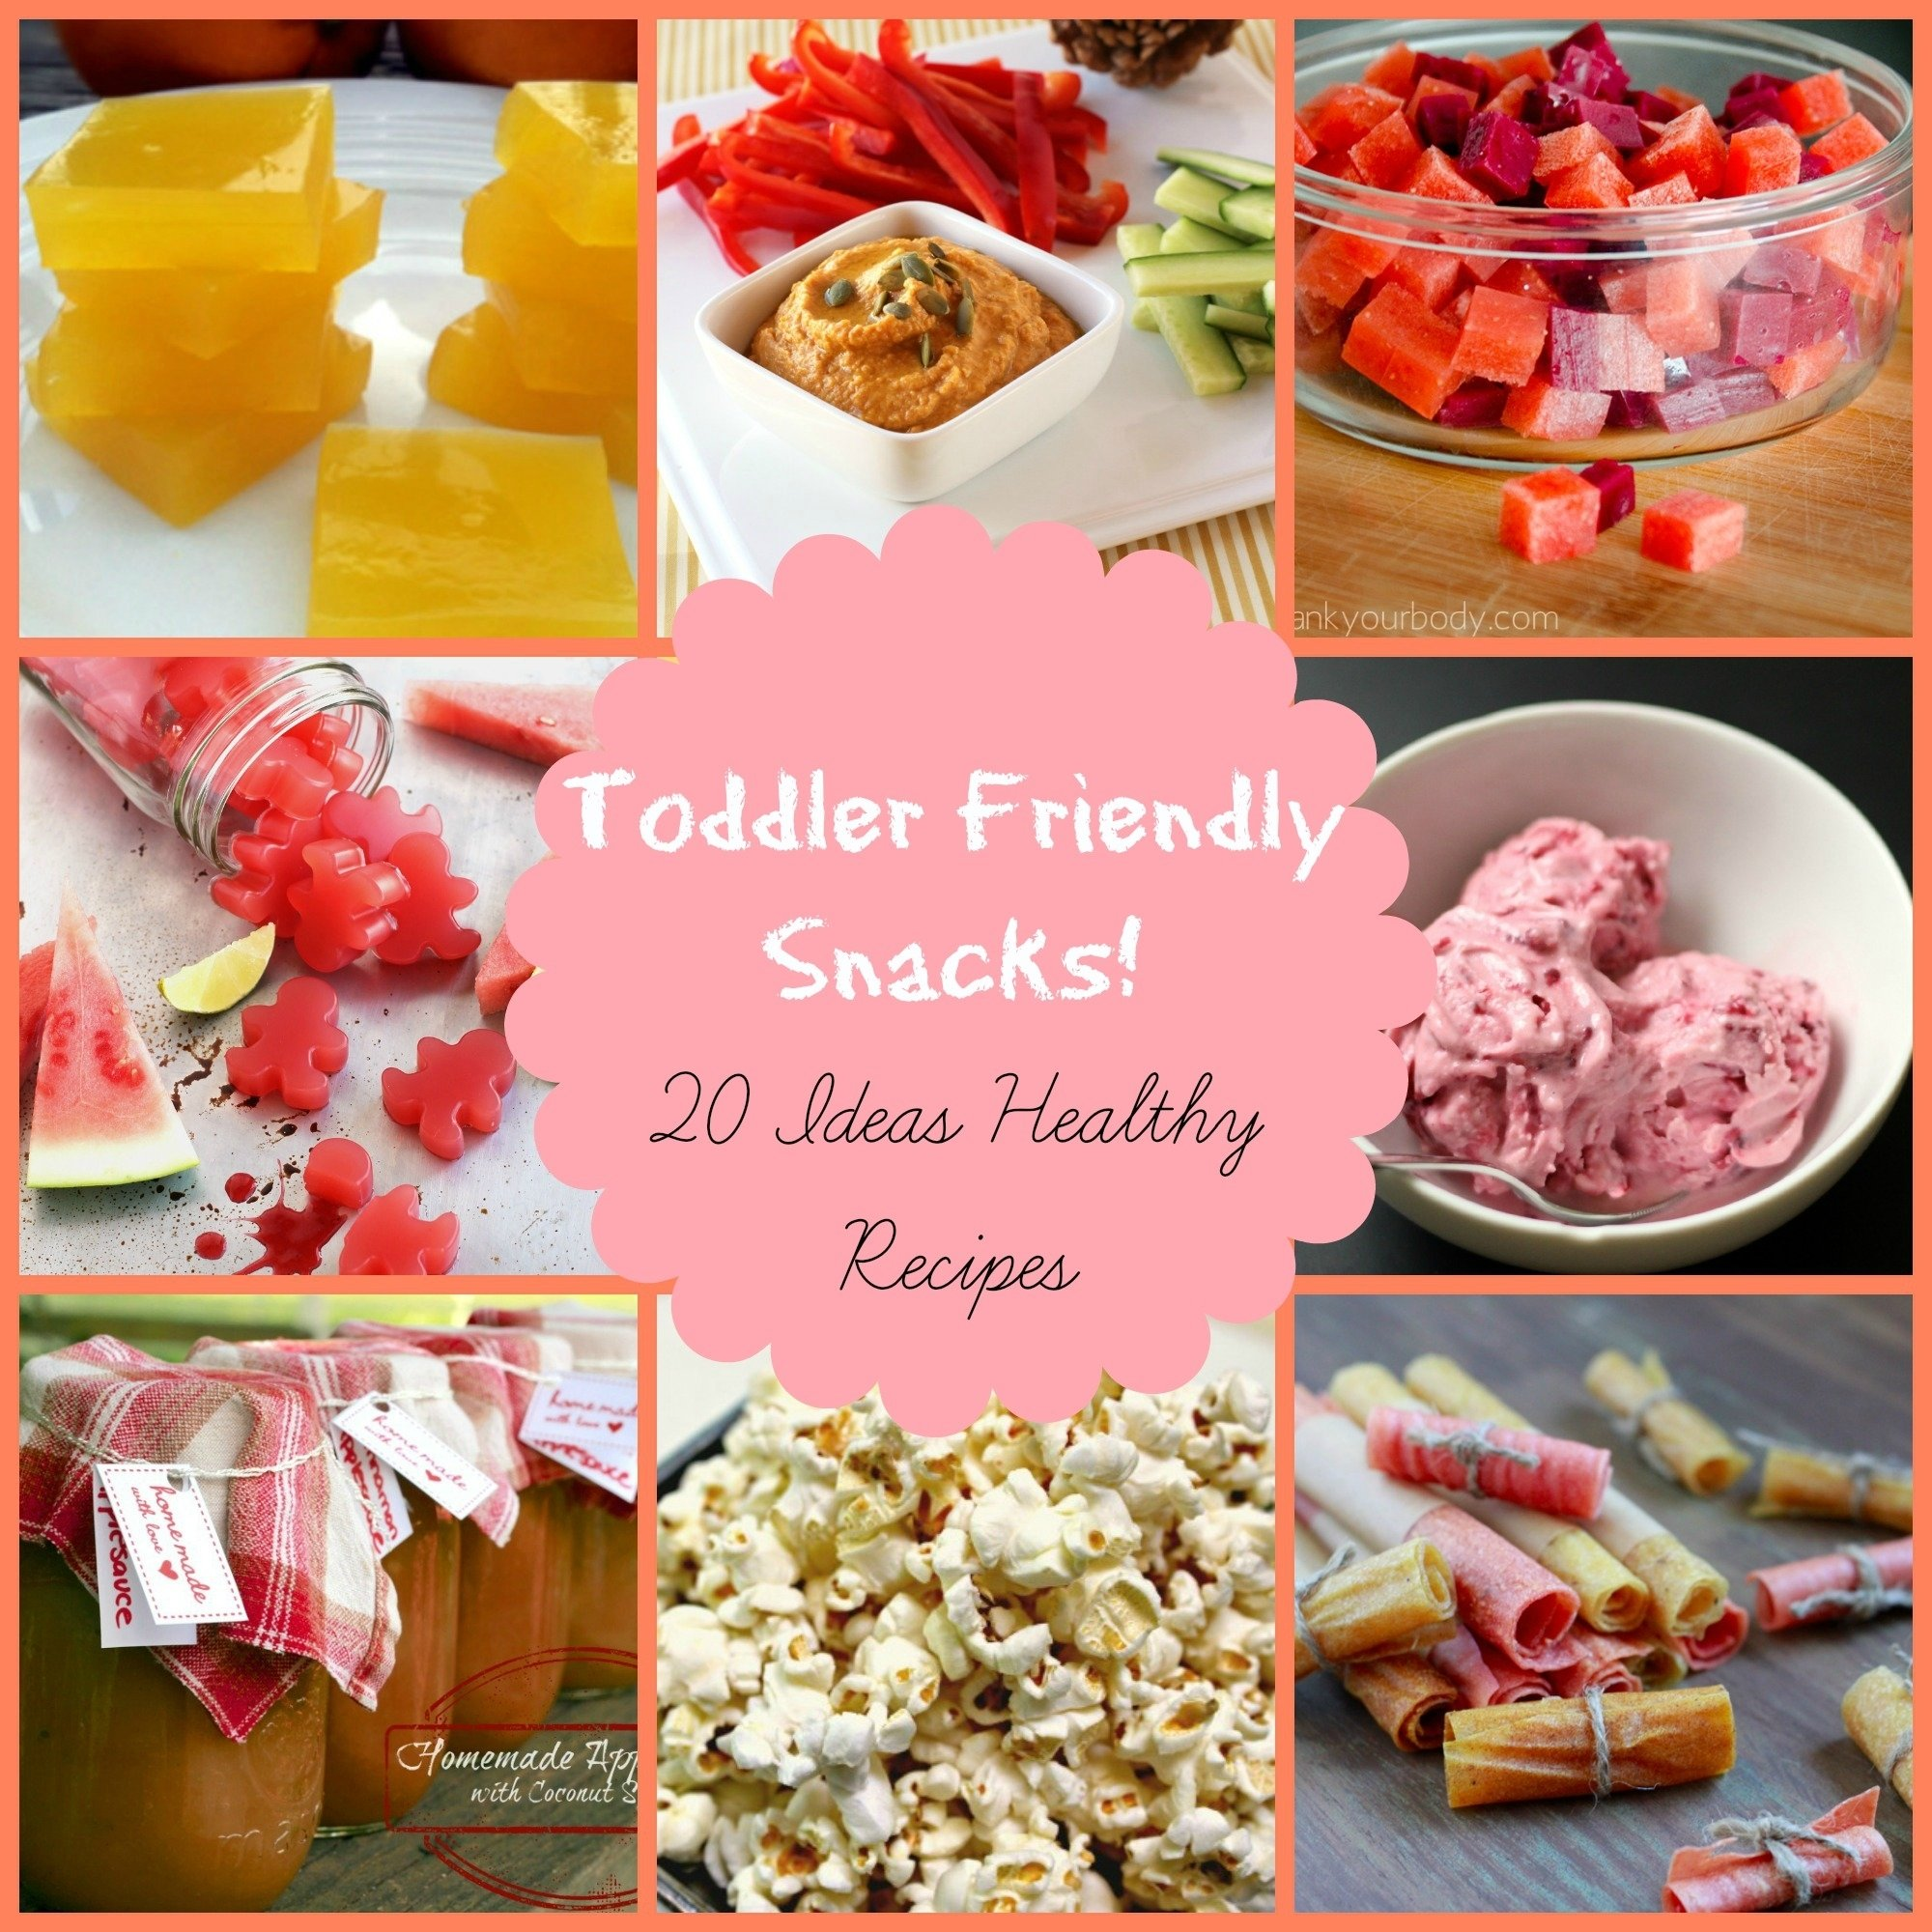 10 Most Popular Healthy Food Ideas For Toddlers healthy snacks for kids 20 toddler friendly ideas cocos well 2020